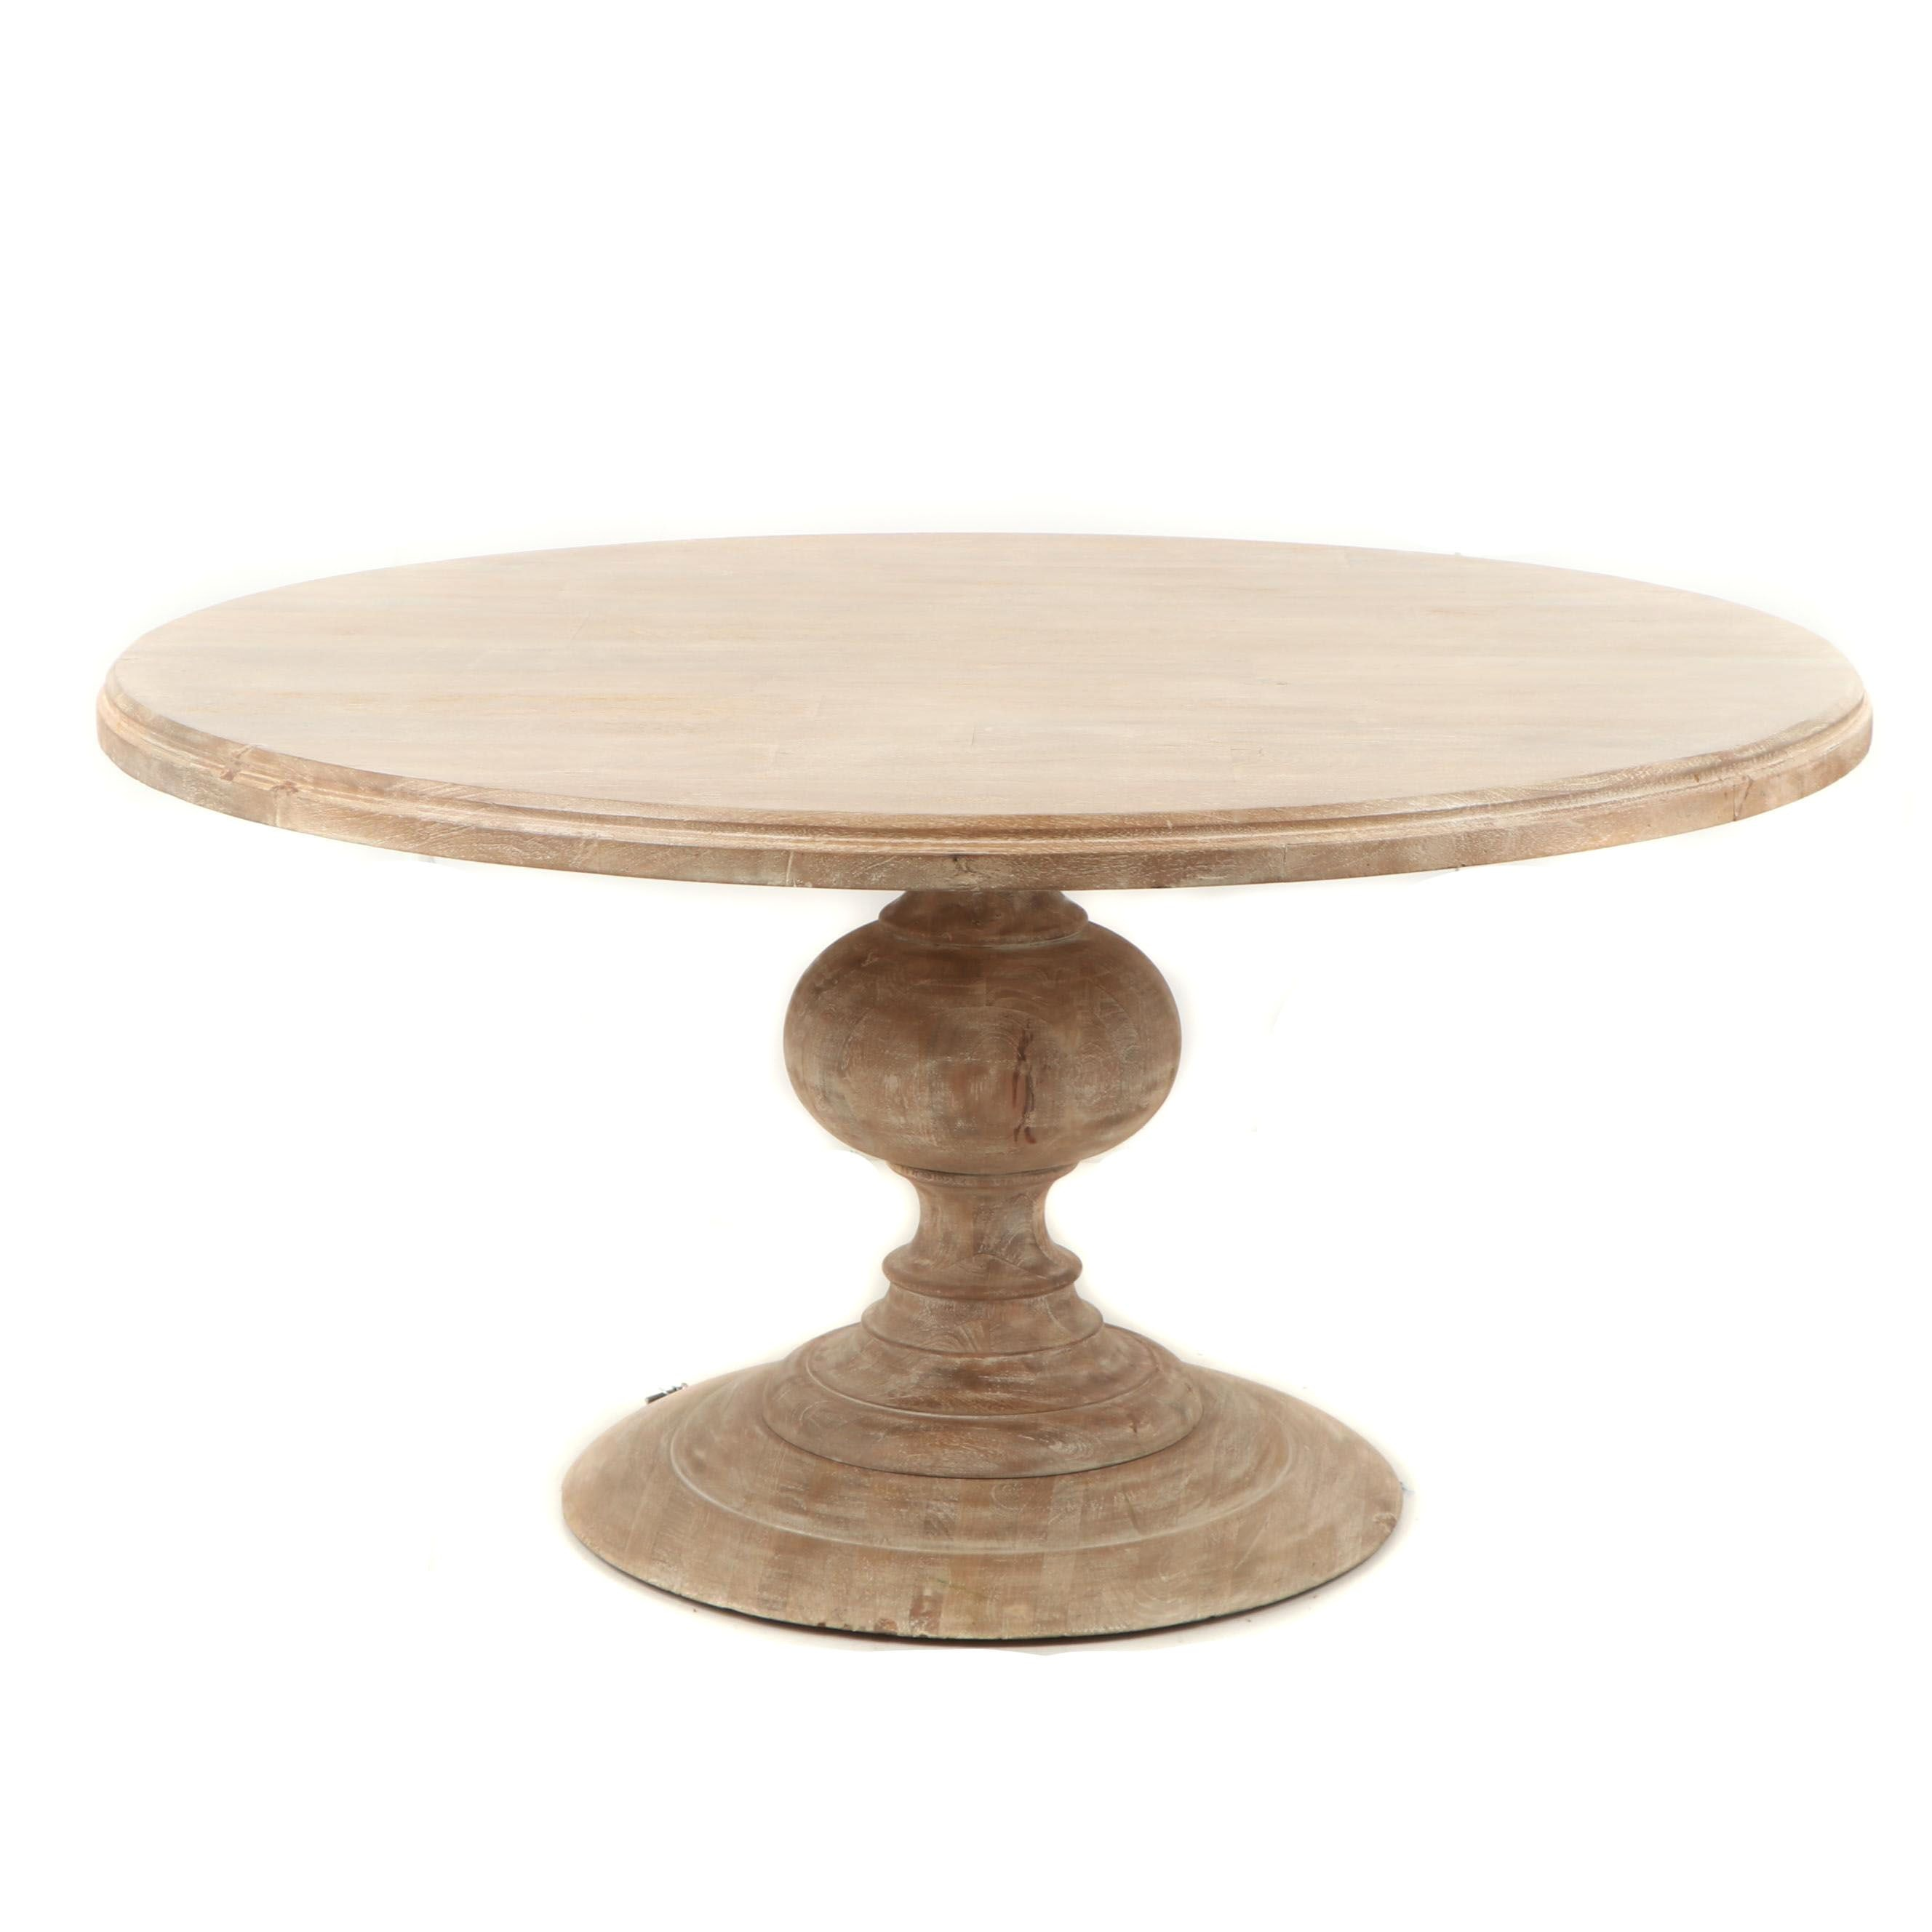 Contemporary Rustic Round Wooden Dining Table